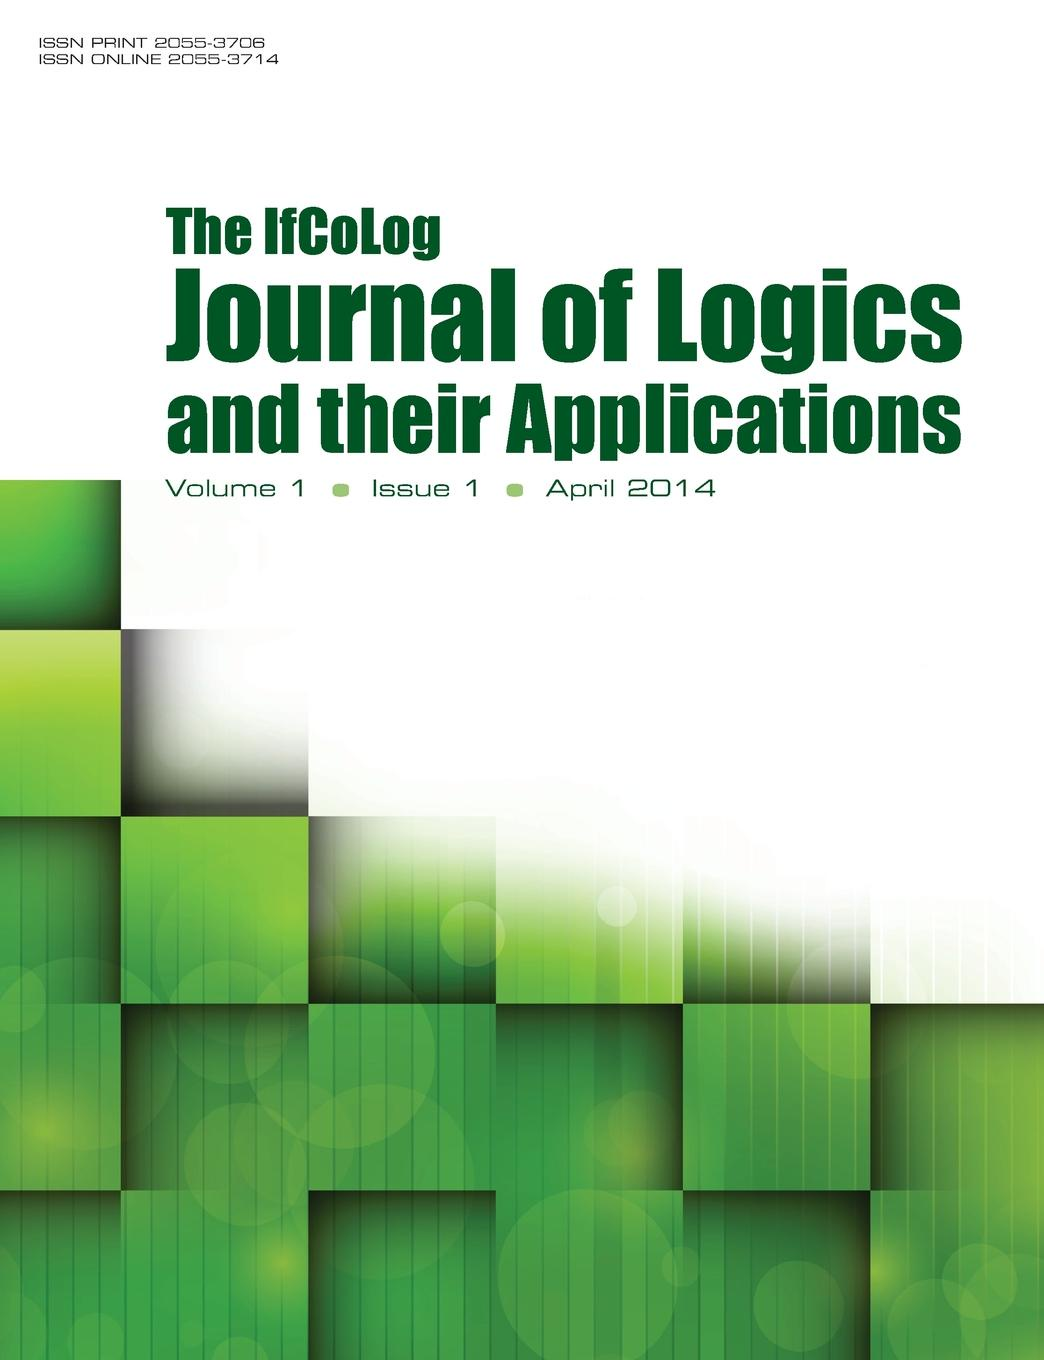 Ifcolog Journal of Logics and Their Applications Volume 1, Number 1 african journal of science technology innovation and development volume 1 number 1 2009